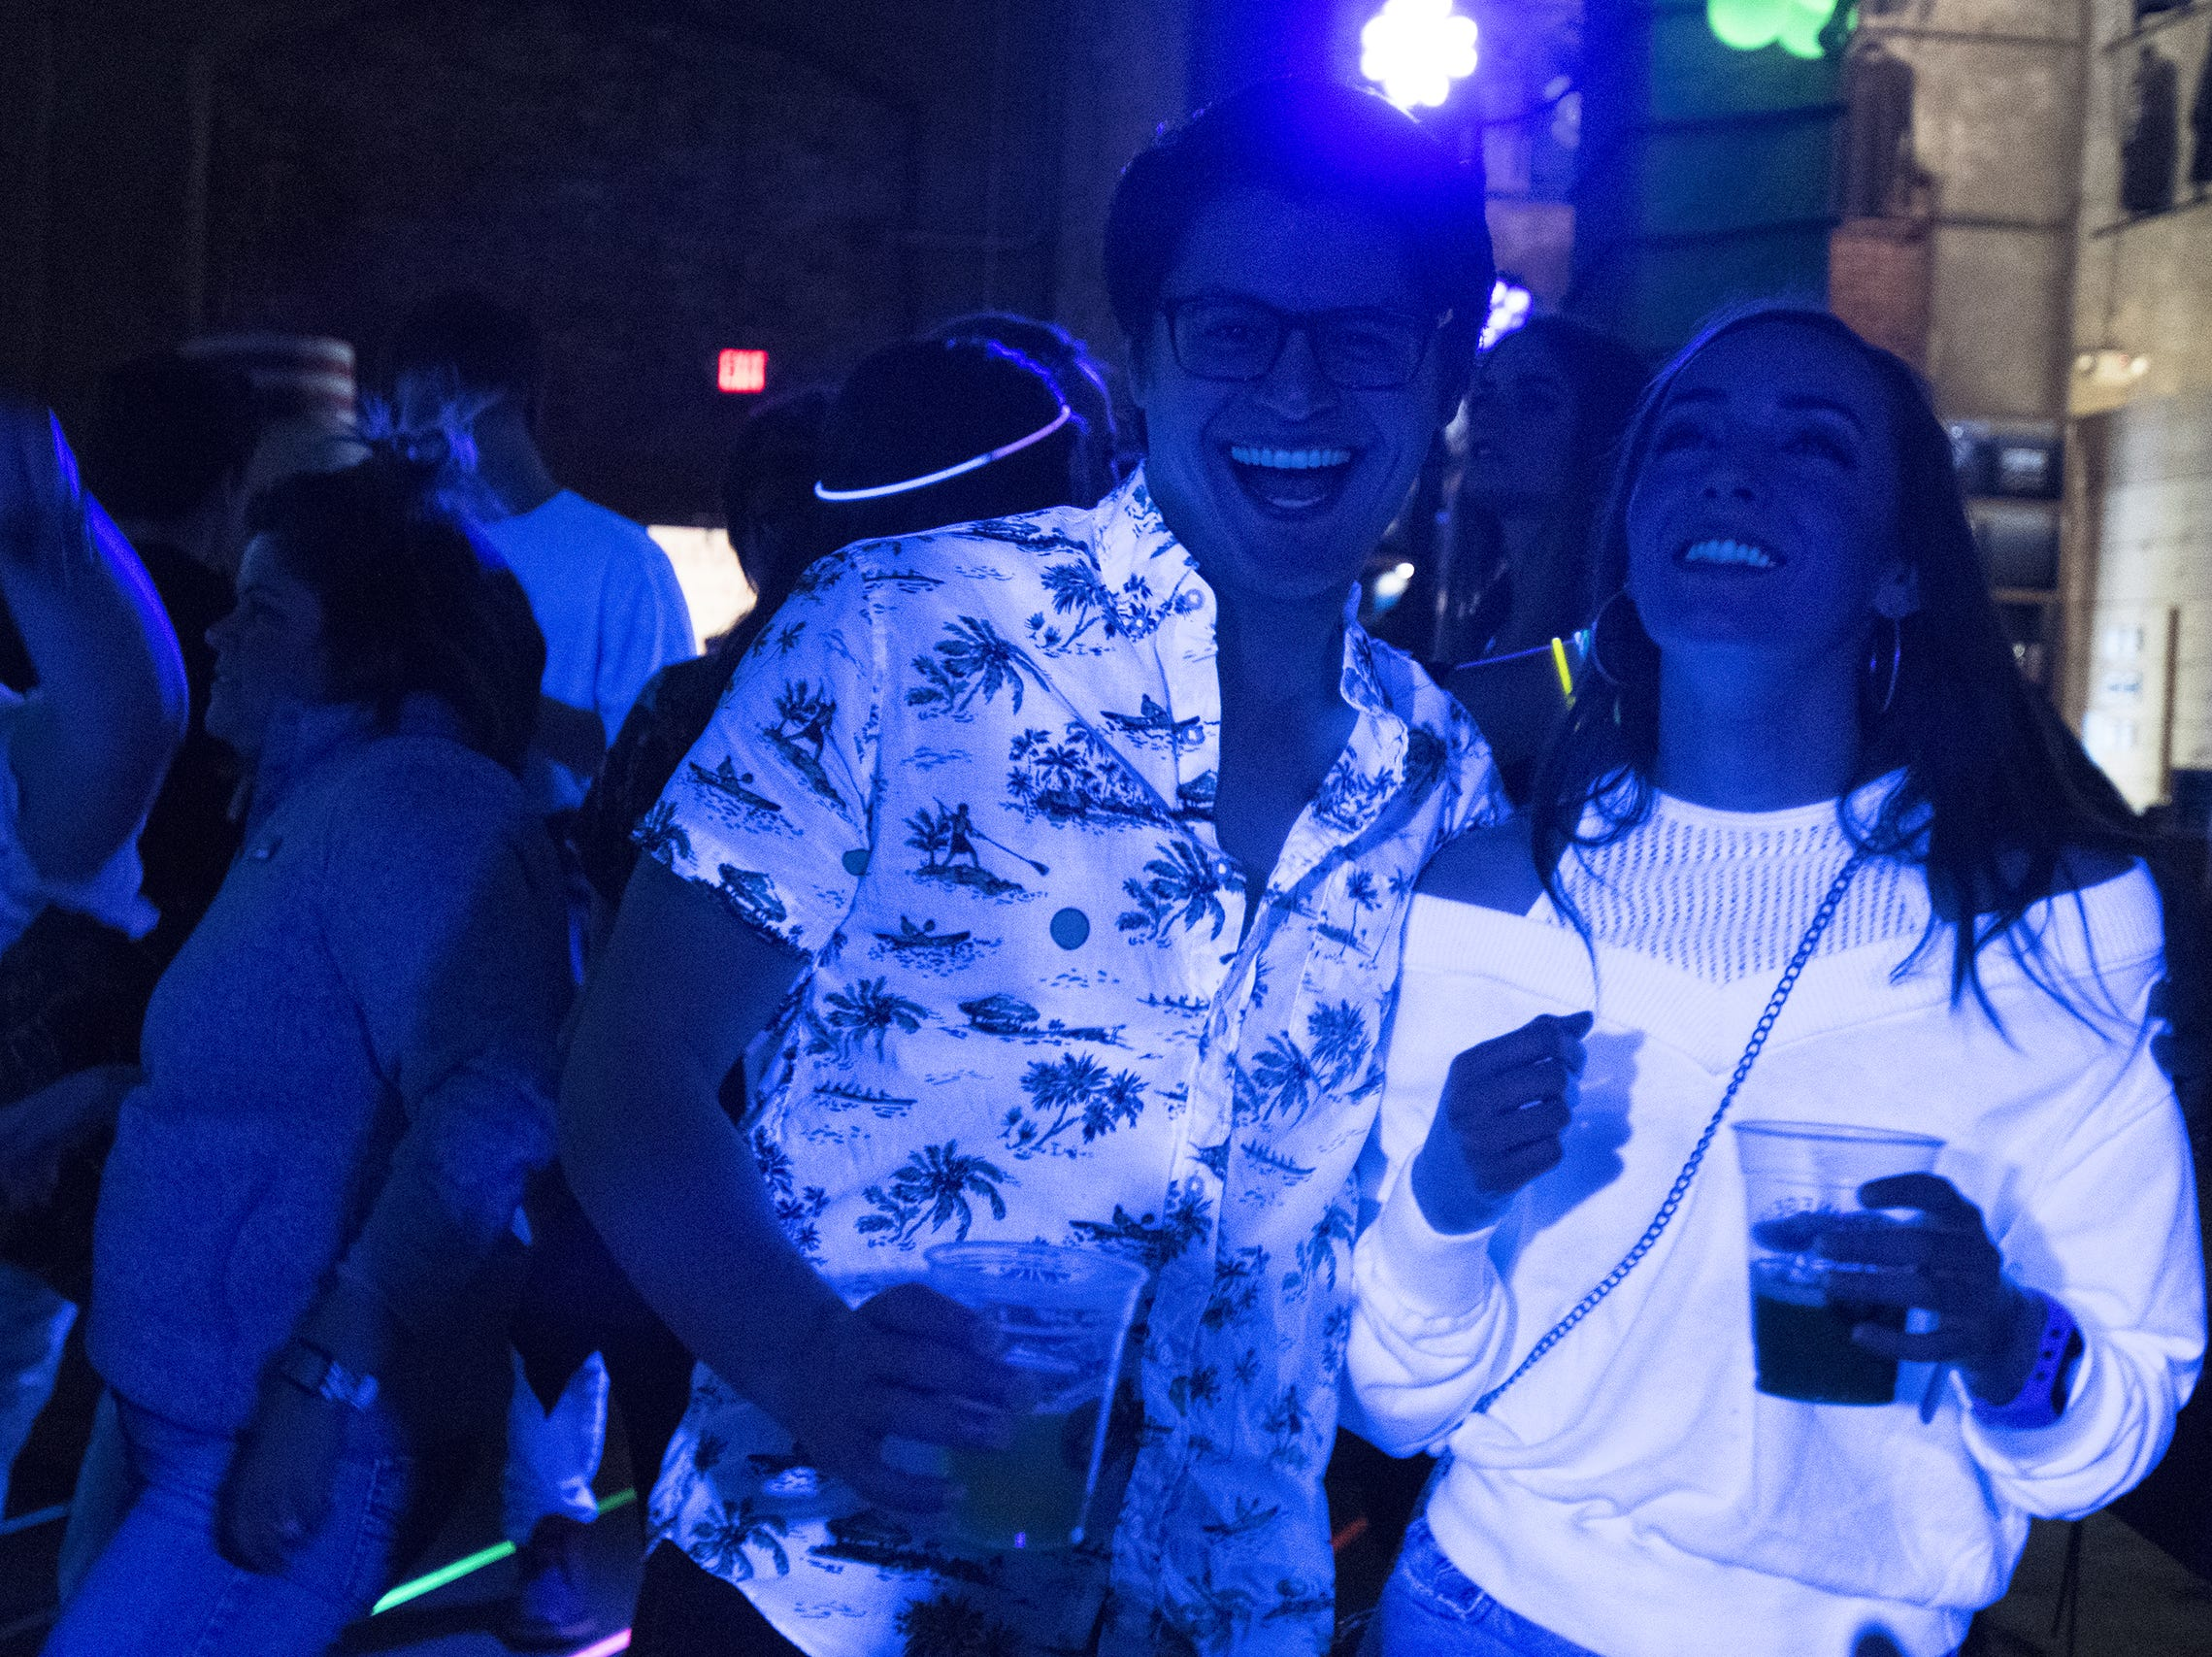 Sean Sherry and Ashton Williams shine under the black lights on the dance floor at Rhinegeist's tropical disco.